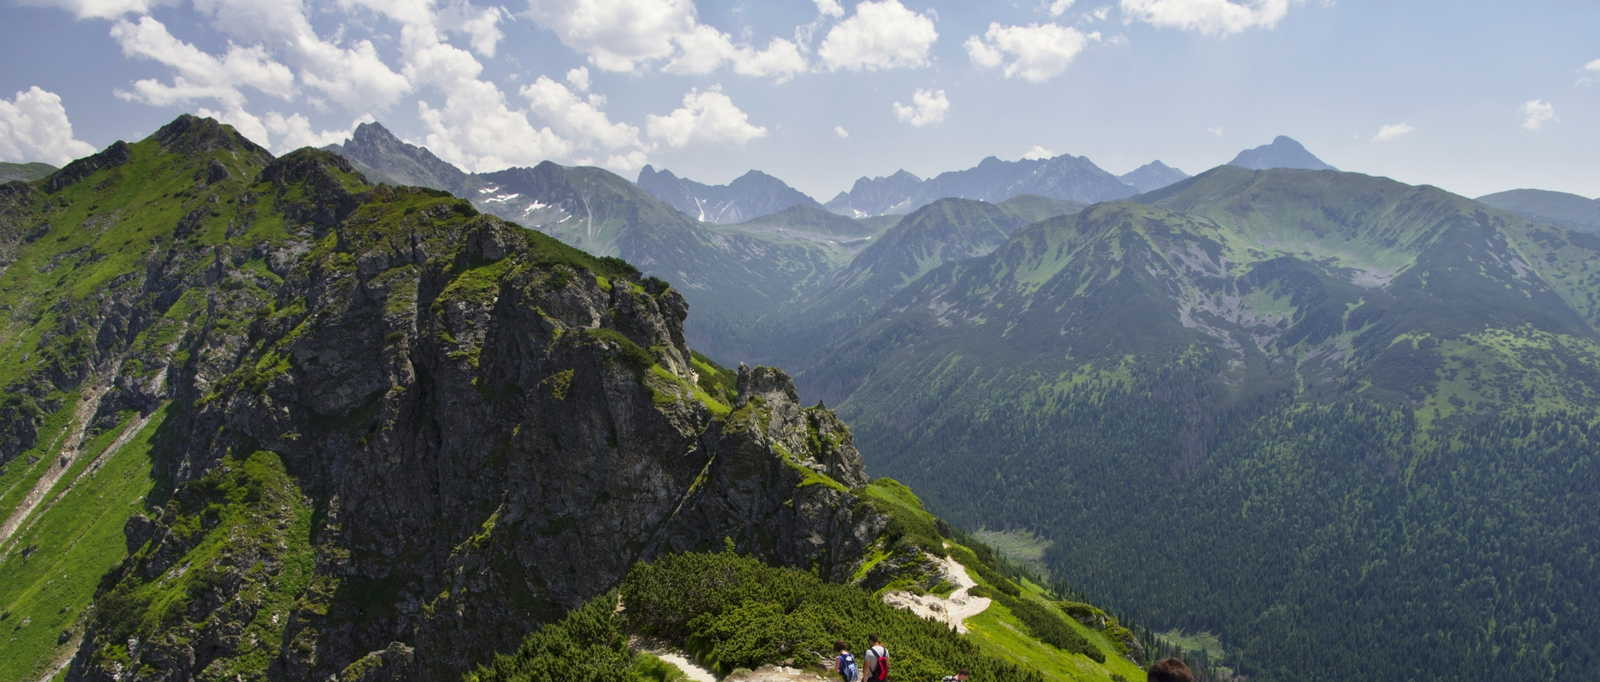 Trek the Polish High Tatras. There's a parkrun in Krakow too!